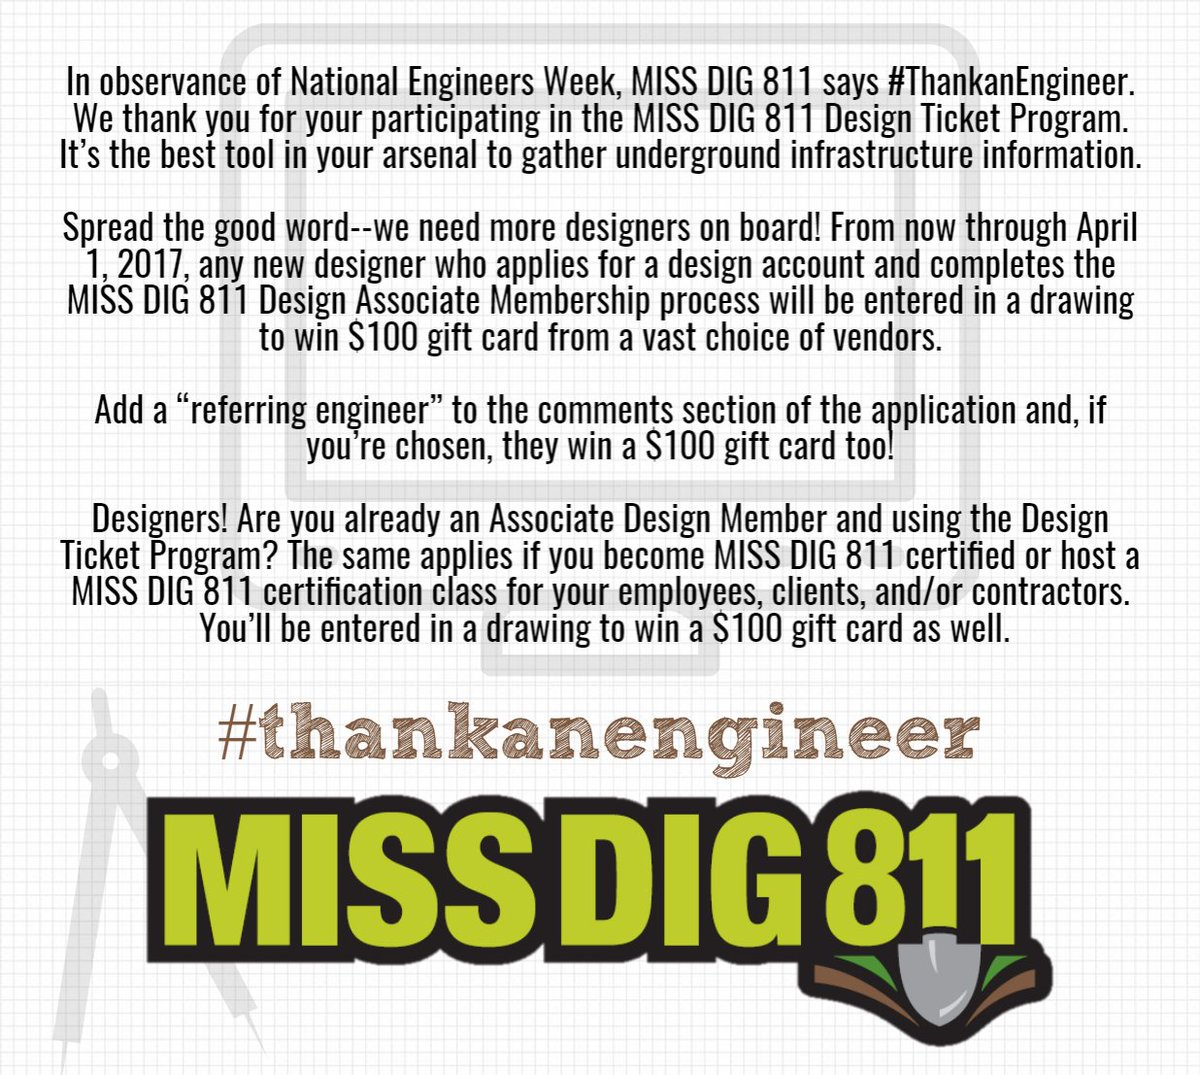 Miss Dig 811 On Twitter Https T Co D0ymvdayta Thankanengineer Eweek2017 Anyone planning to dig within chicago must obtain a dig ticket from 811 chicago. twitter